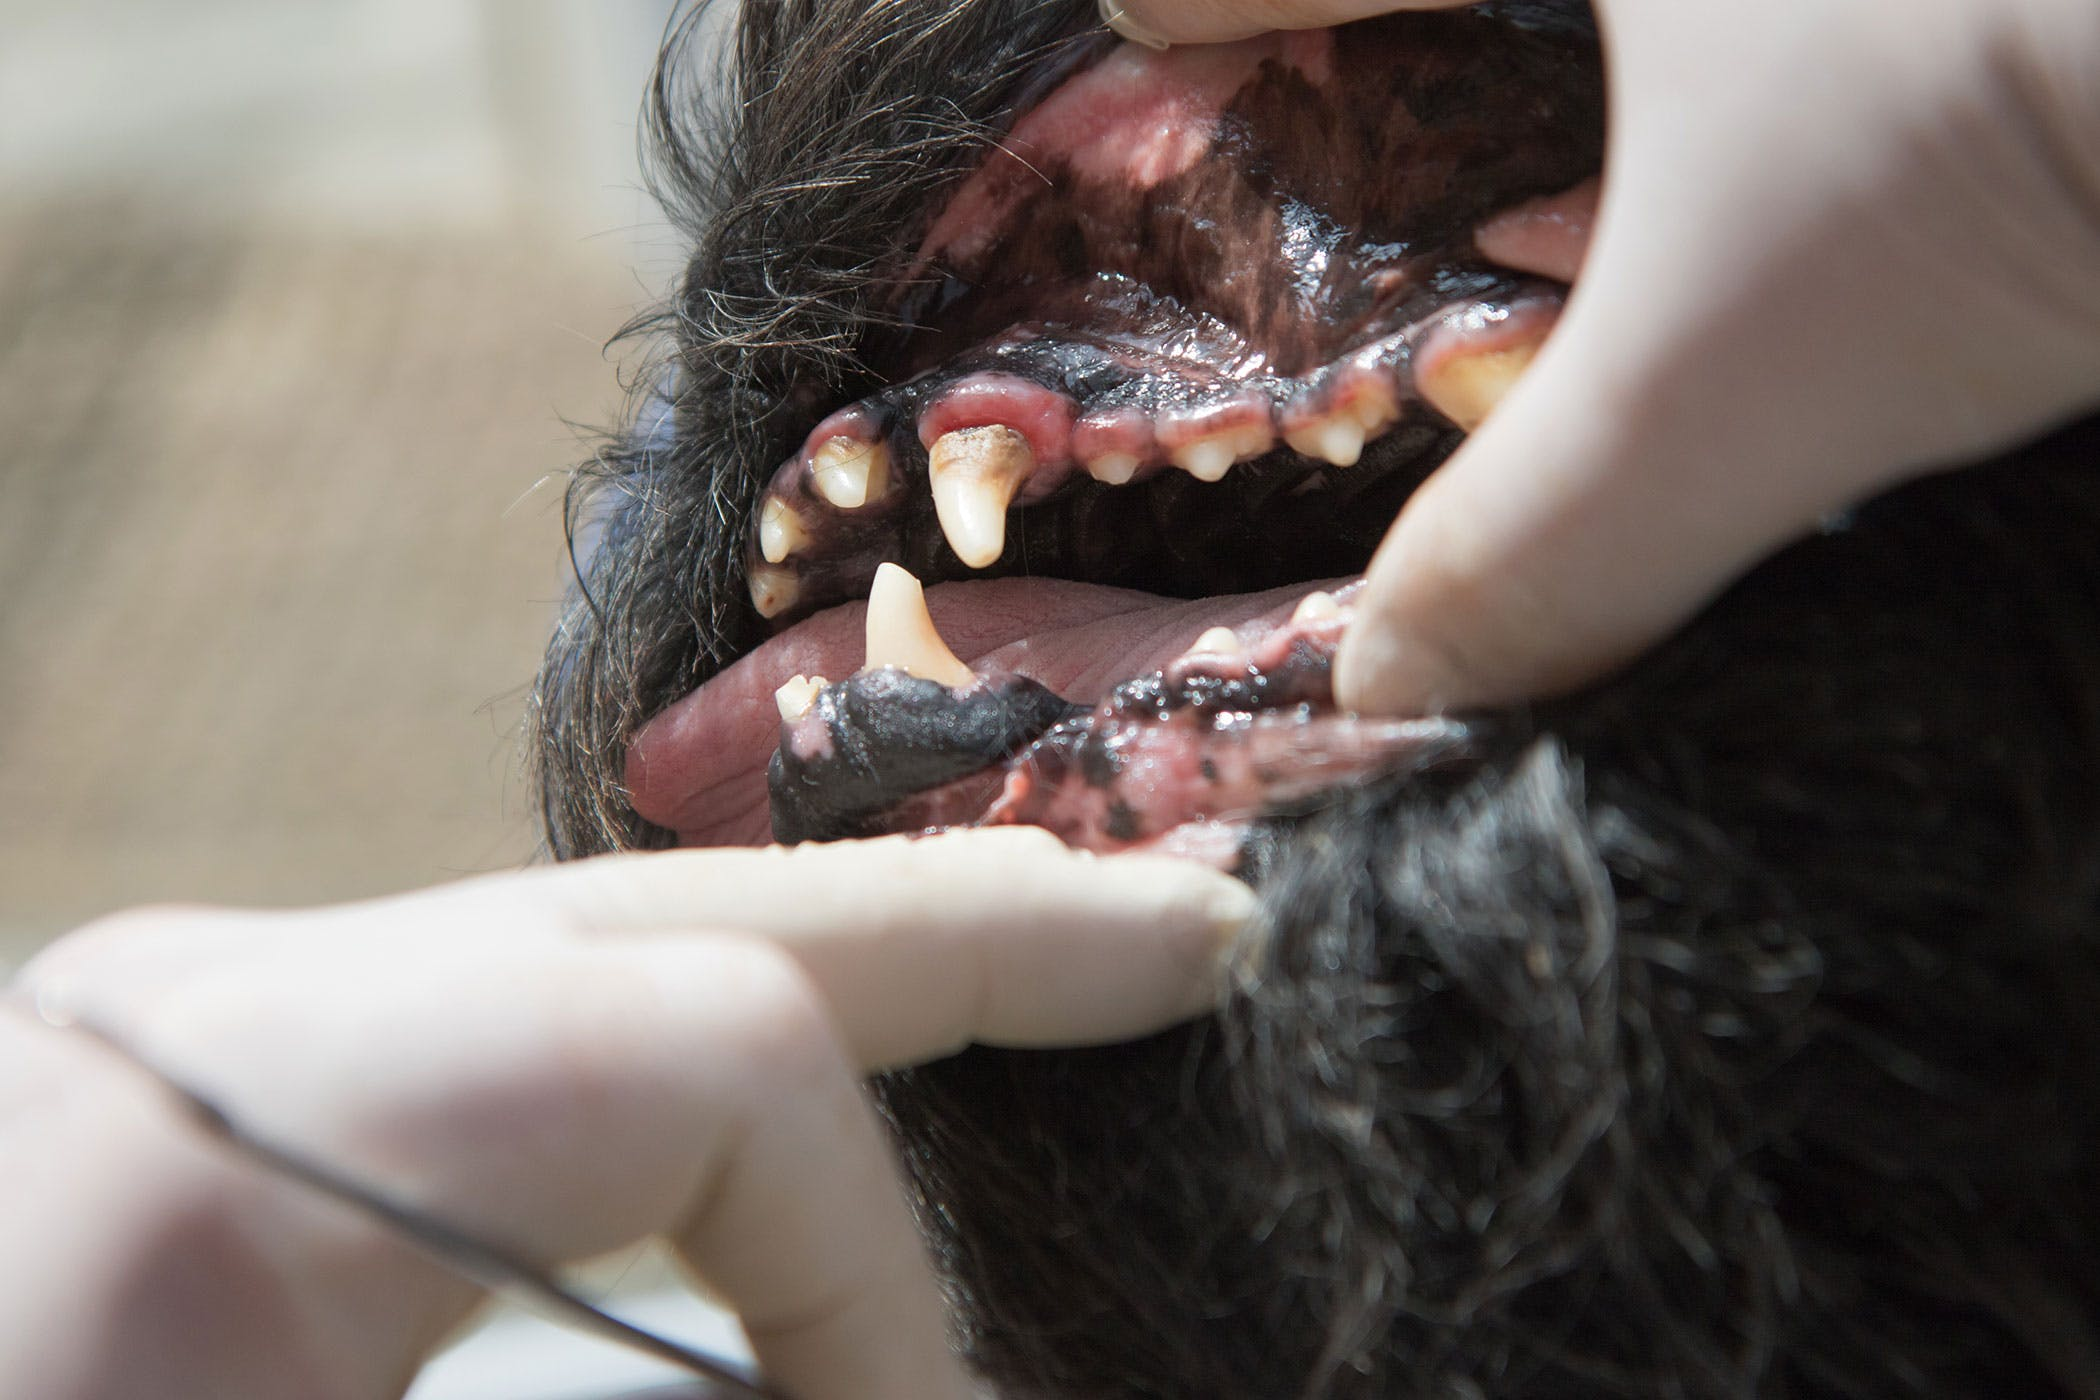 Tooth Root Abcess in Dogs - Symptoms, Causes, Diagnosis, Treatment